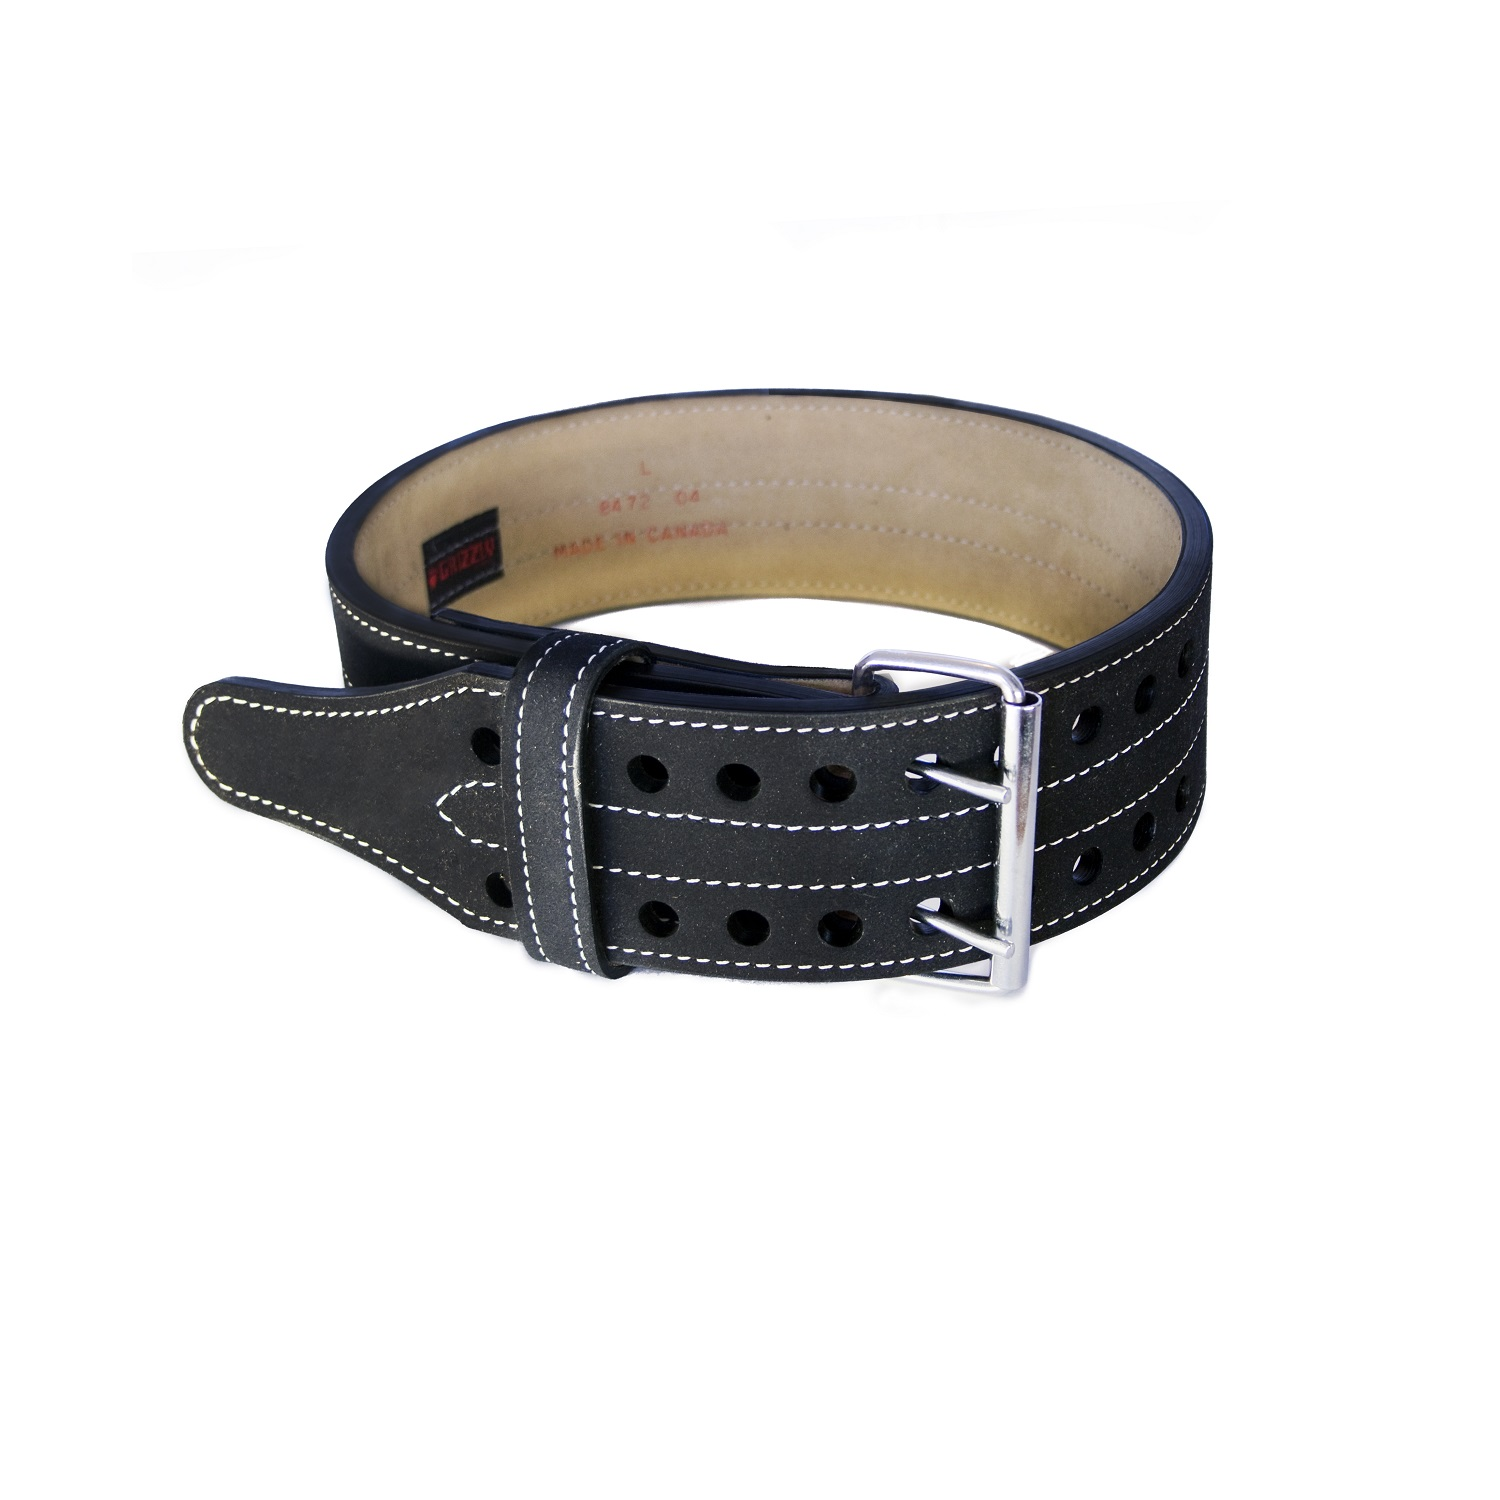 "4"" Double Prong Powerlifting Belt - XL"